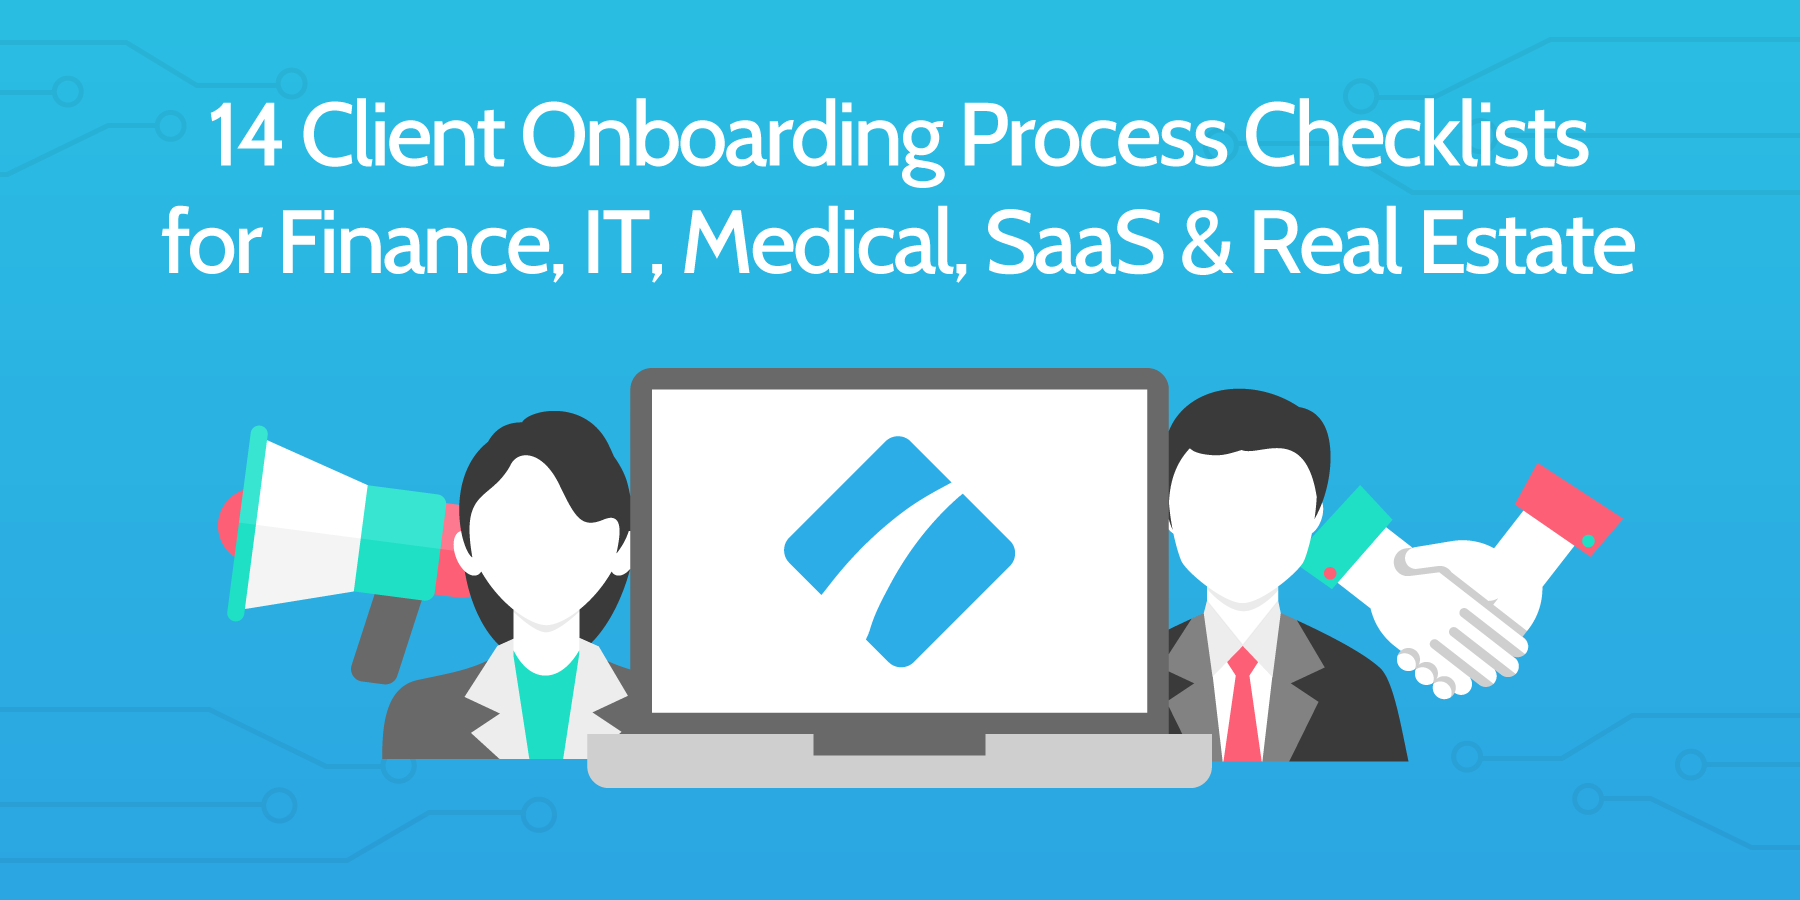 14 Client Onboarding Process Checklists for Finance, IT